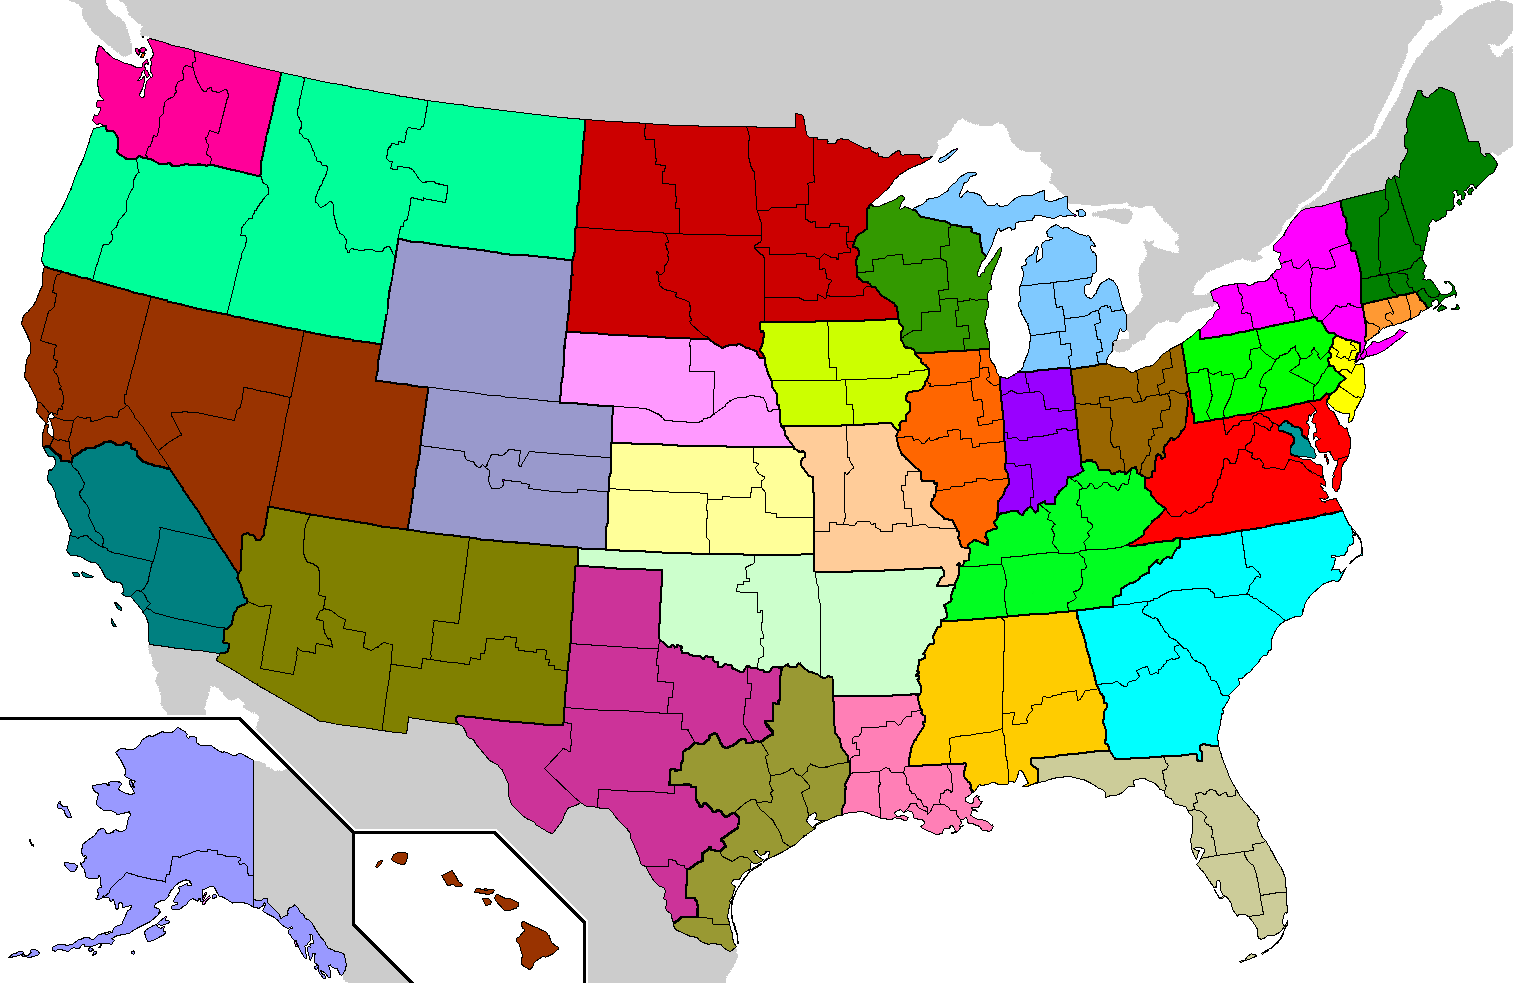 File:US Roman Catholic dioceses map.png - Wikimedia Commons